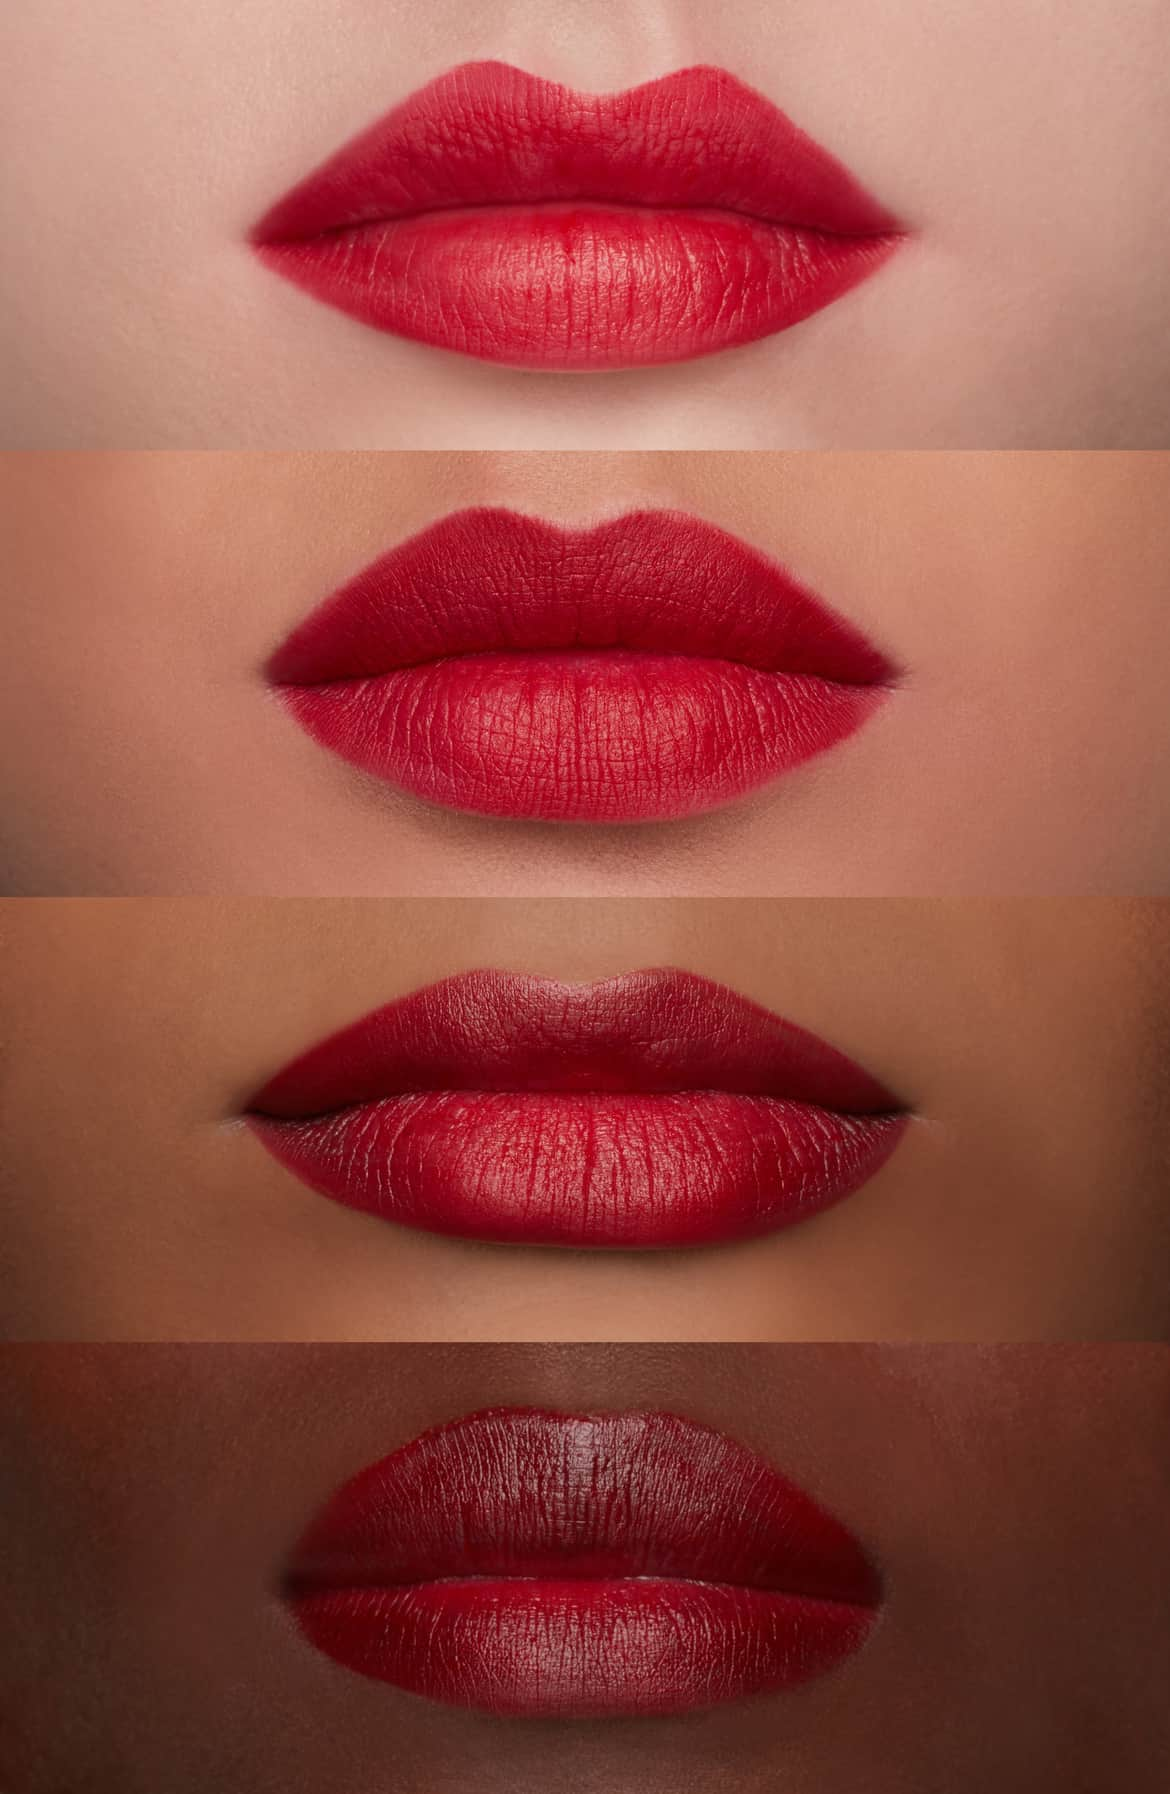 b26290a3 9b31 44d4 b0e3 bfe4b67eb234 - How to Find a Lipstick to Look Amazing on You